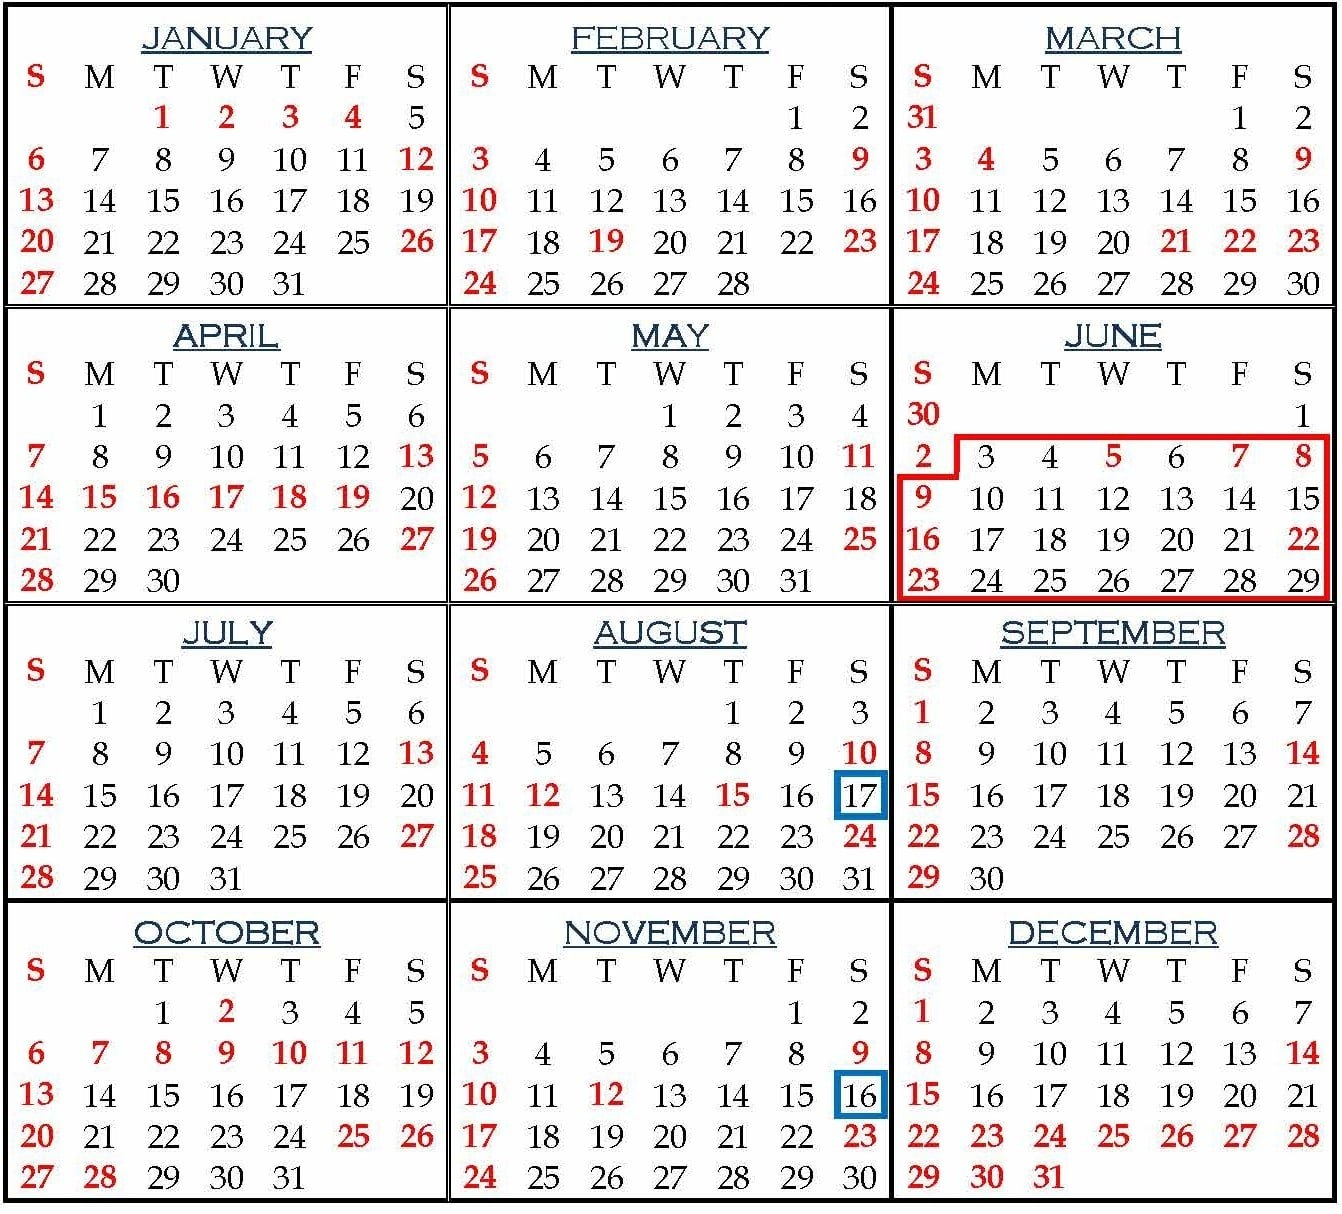 Holiday List For Employees Of Punjab And Haryana High Court, 2019 U Of H Calendar 2019